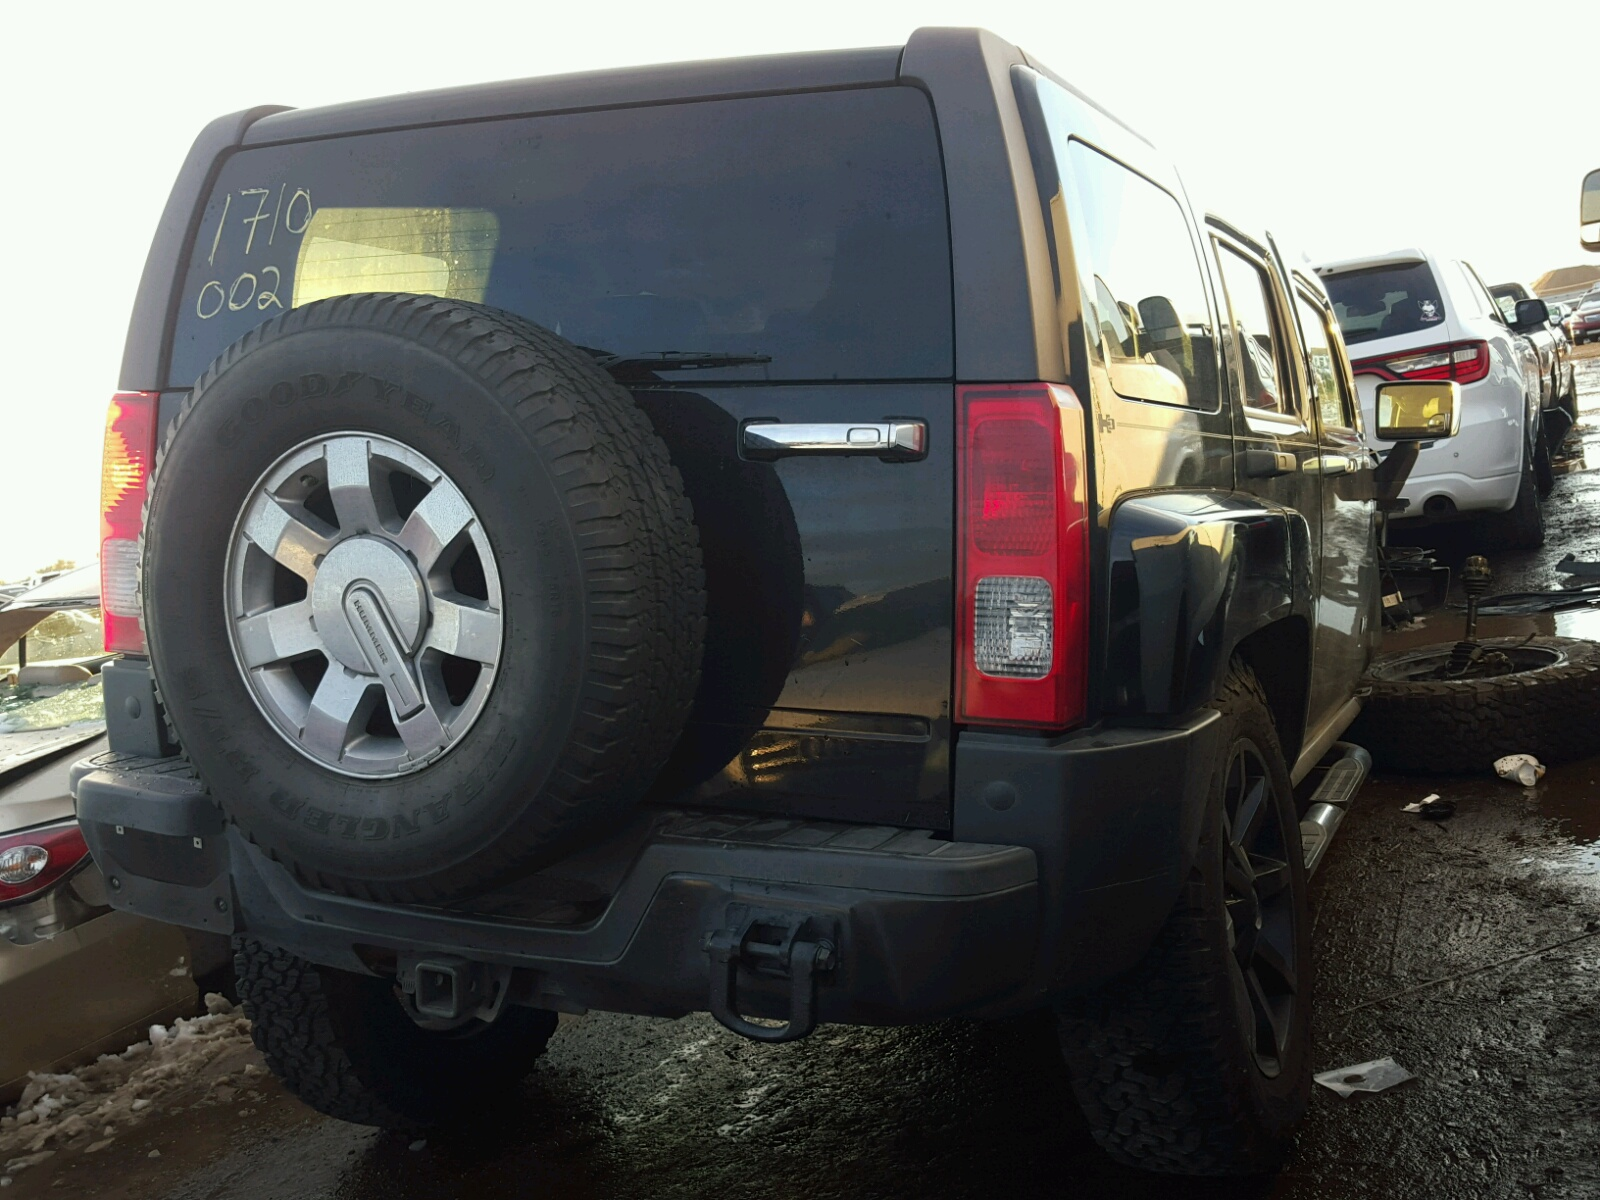 2008 Hummer H3 for sale at Copart Brighton CO Lot